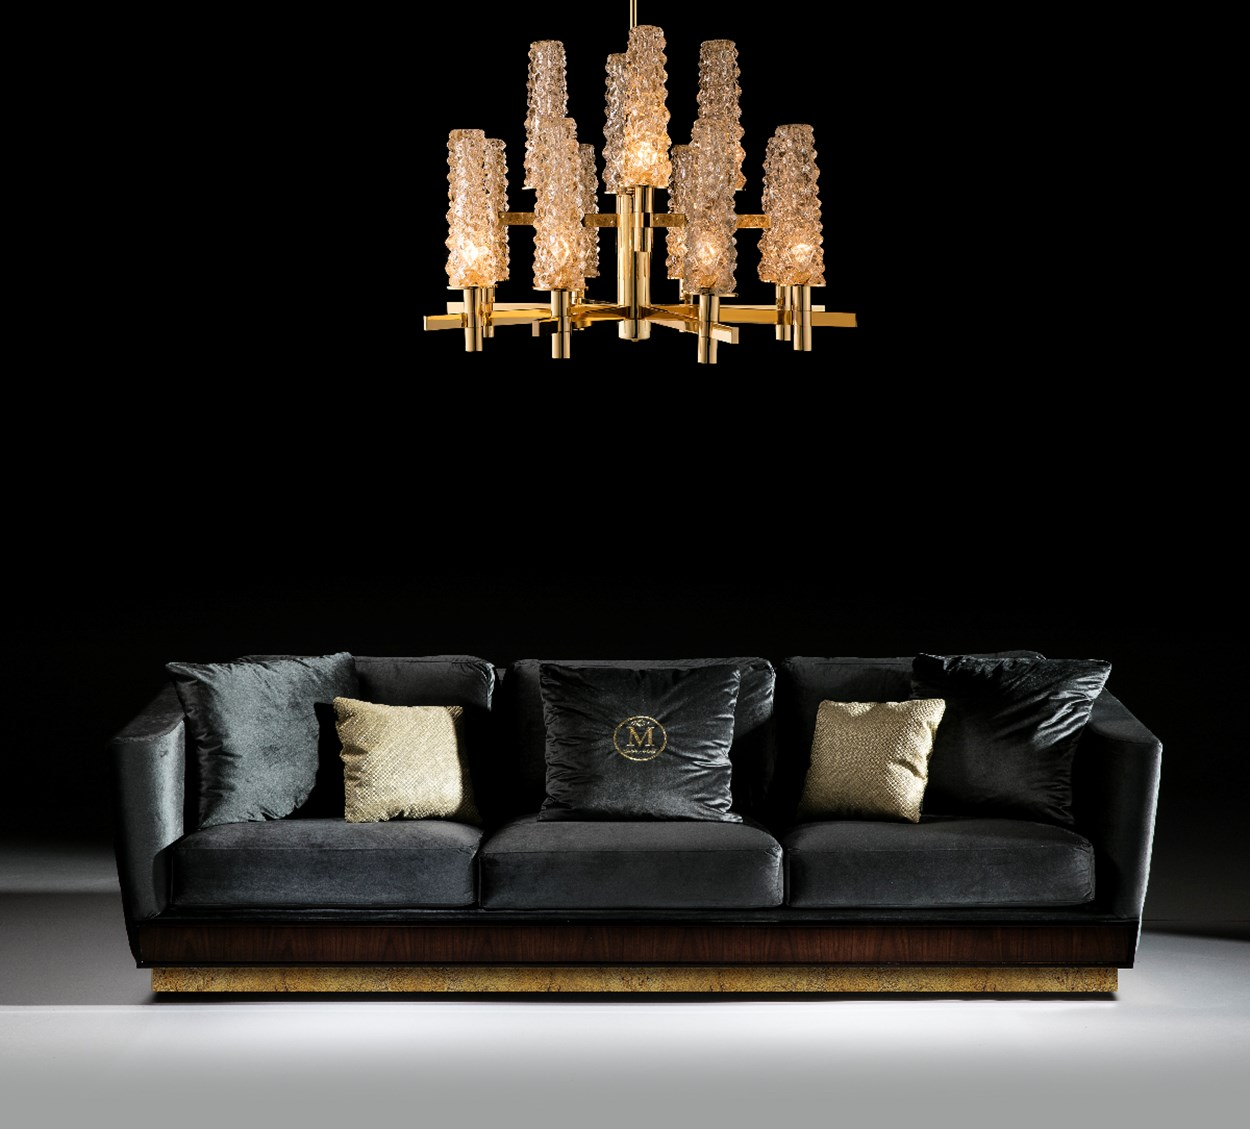 Mariner-Mayfair-Sofa.jpg